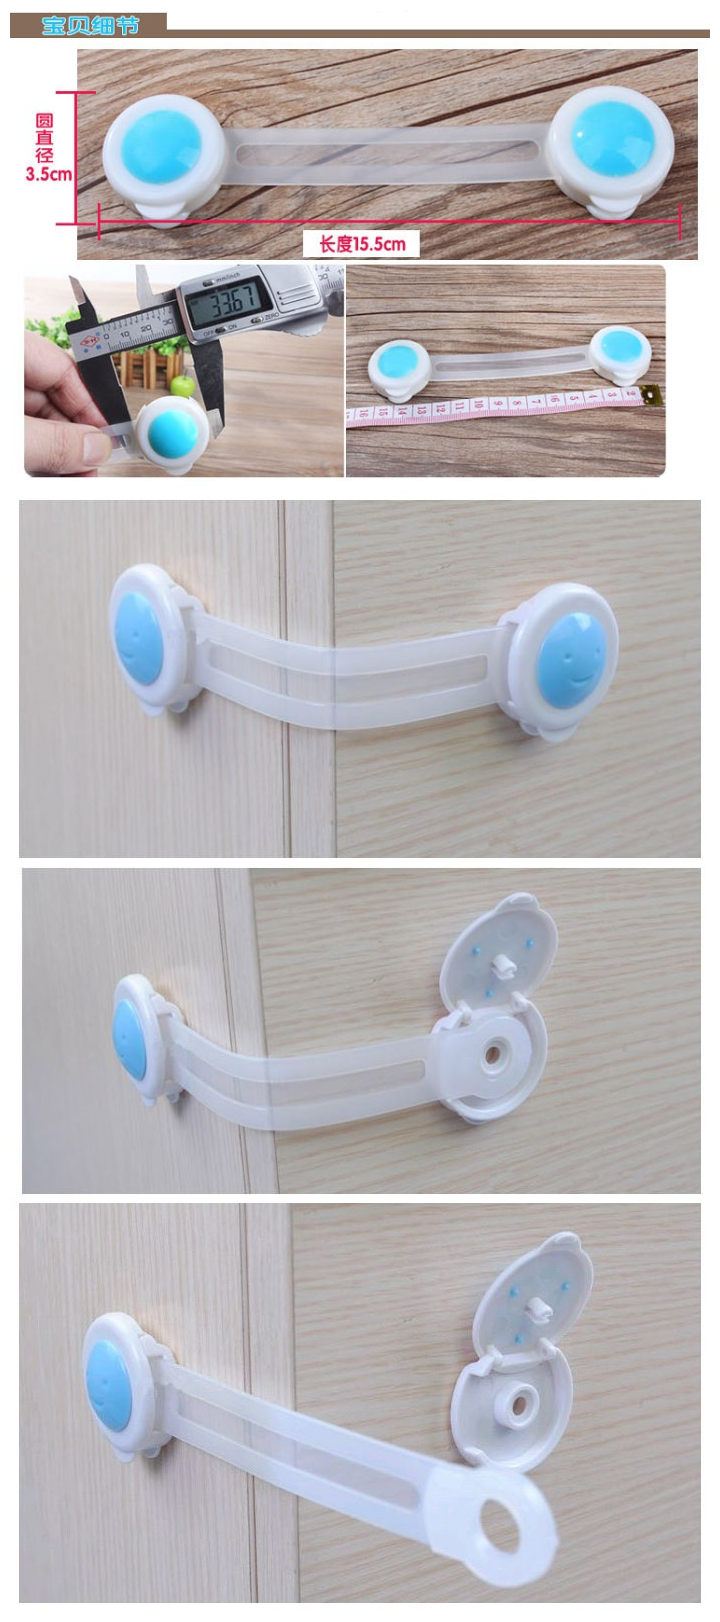 Little B House Multifunctional Protective Extra Long Child Safety Lock (2 Pieces)